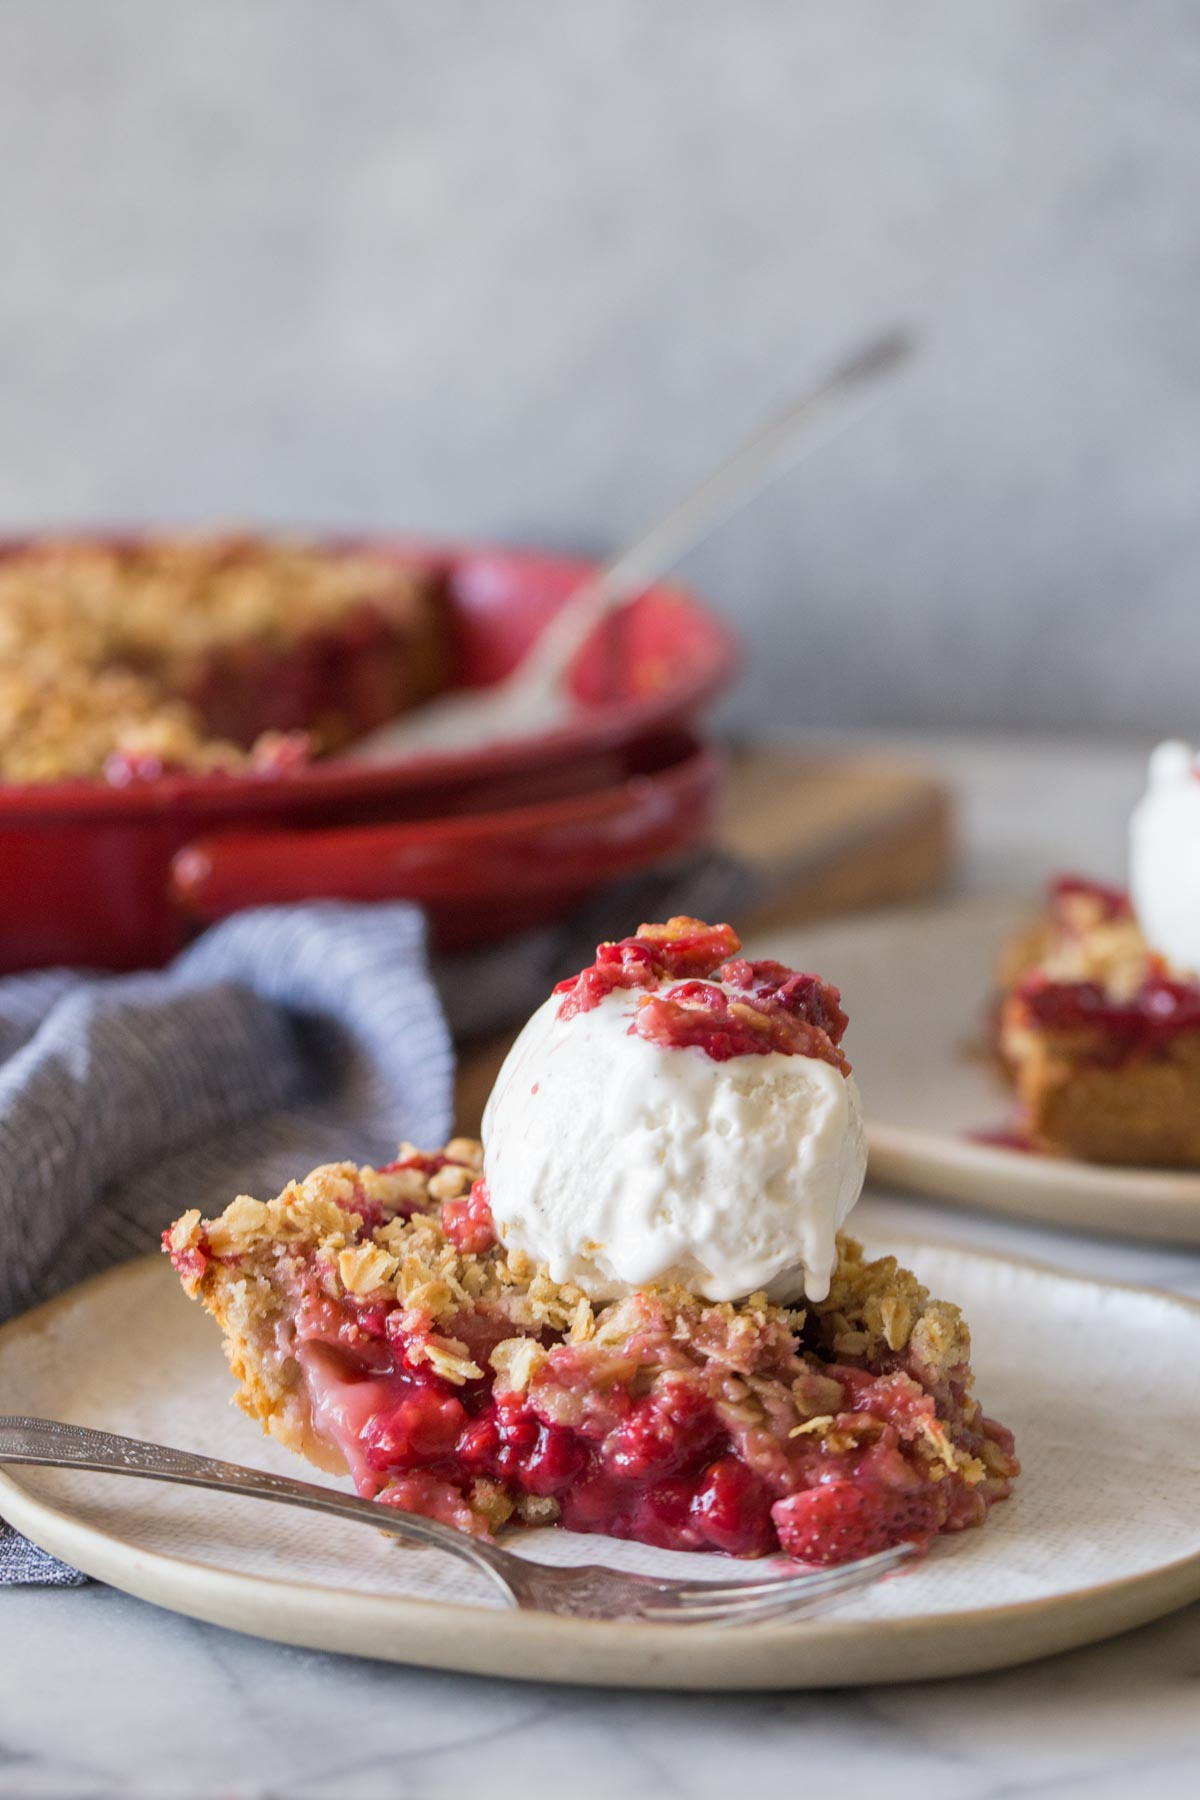 A slice of Berry Crumble Pie topped with a scoop of vanilla ice cream.